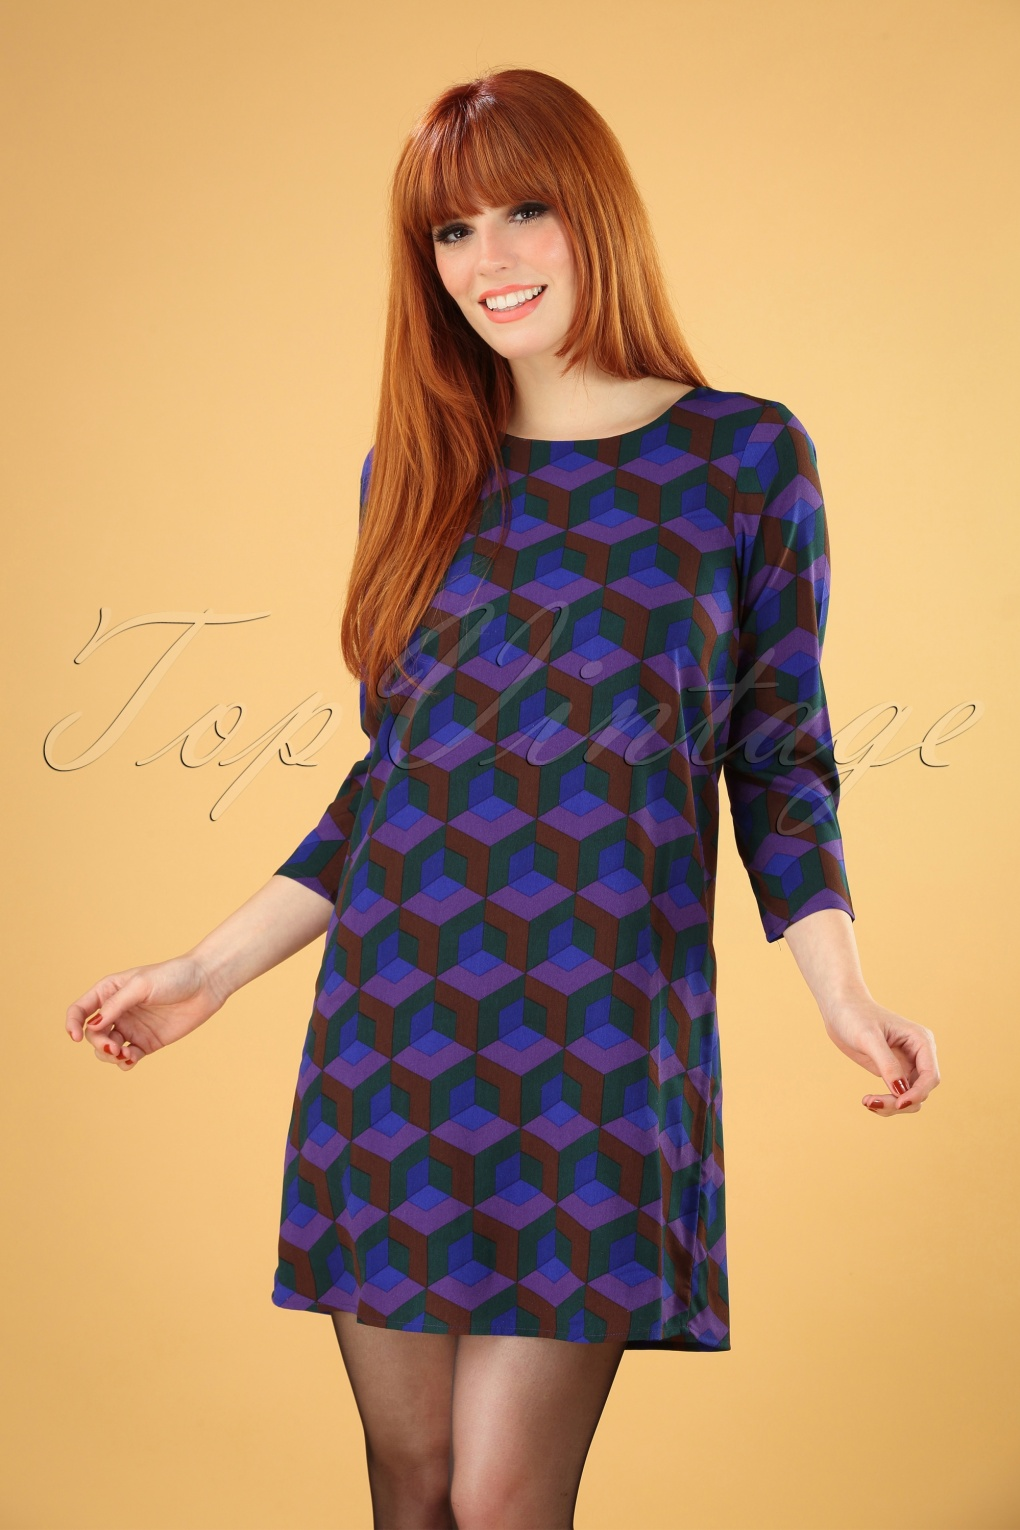 Vintage Inspired Dresses & Clothing UK 60s Verna Graphic Dress in Blue £44.52 AT vintagedancer.com